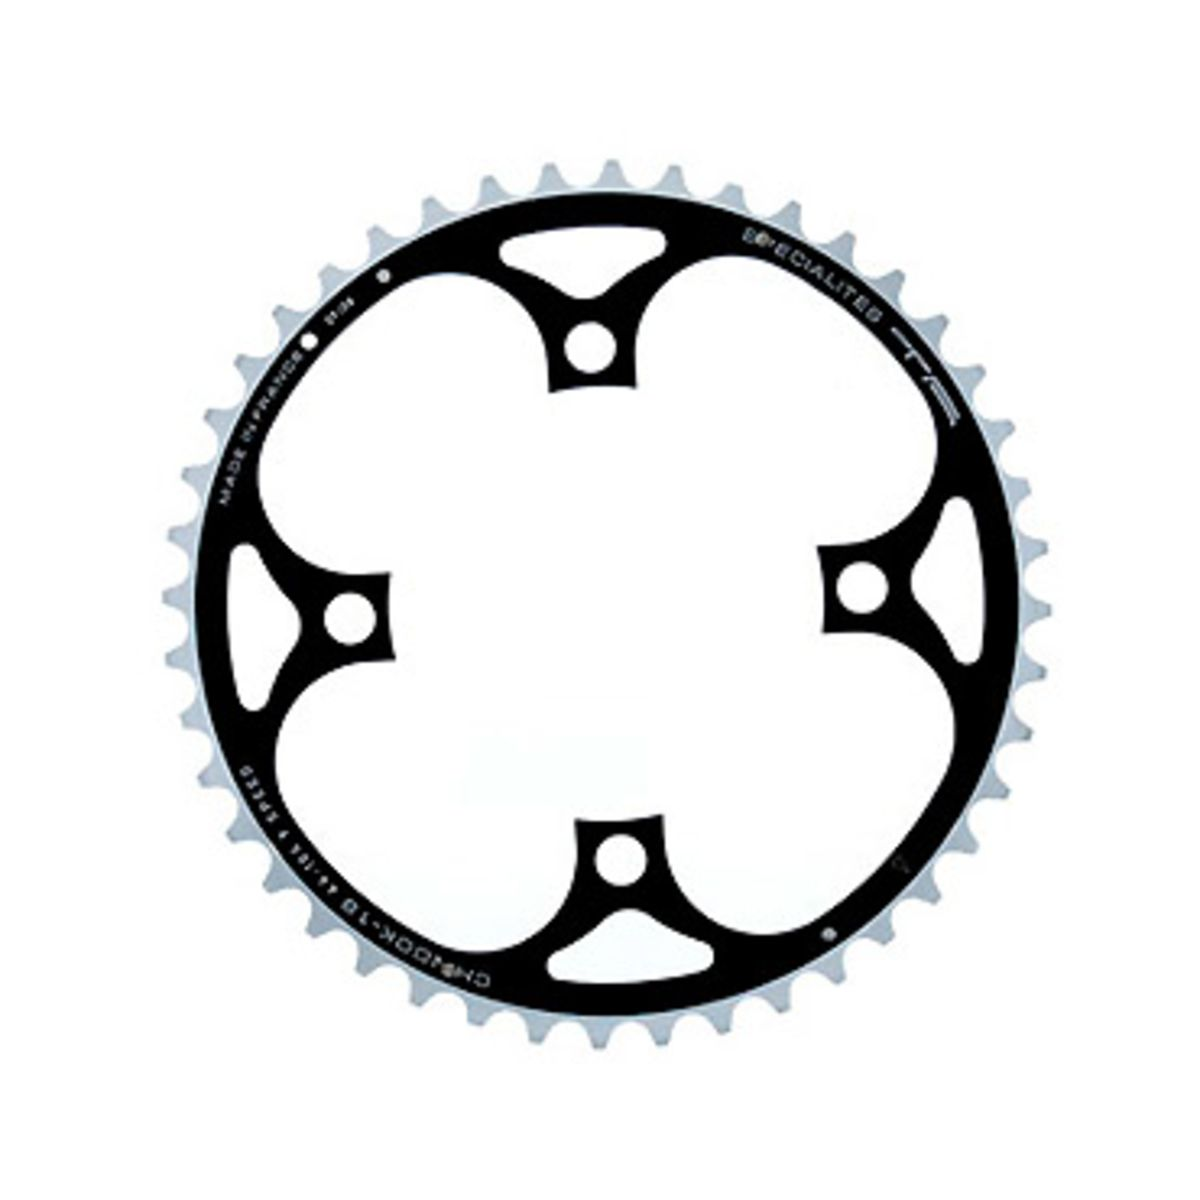 Chinook 9-speed 44-tooth chainring